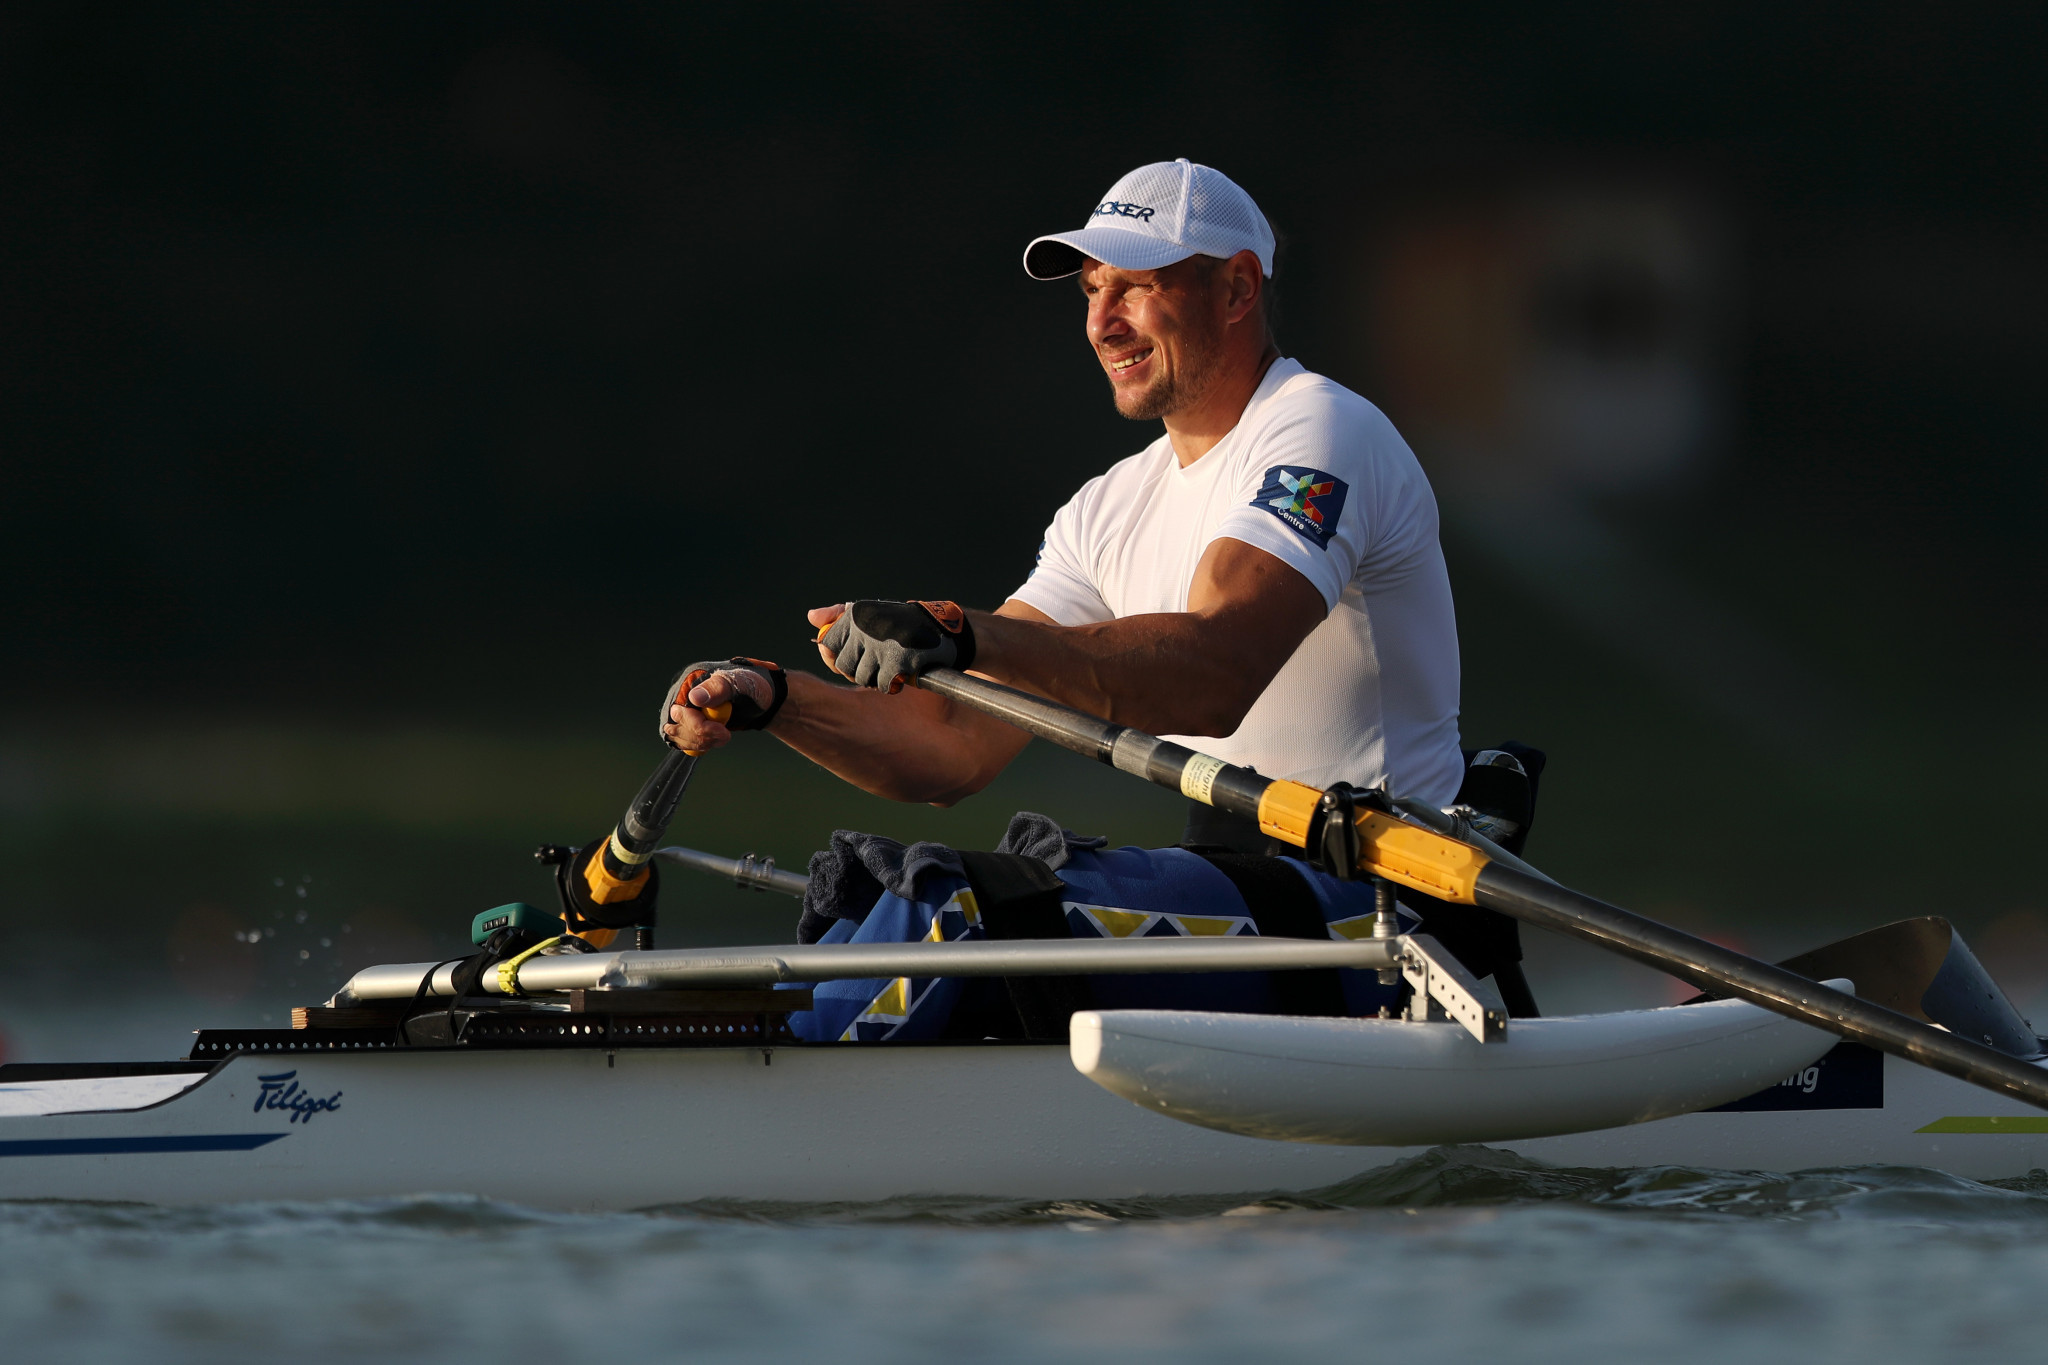 Roman Polianskyi won the European Rowing Championships title with victory in the PR1 men's single sculls ©Getty Images